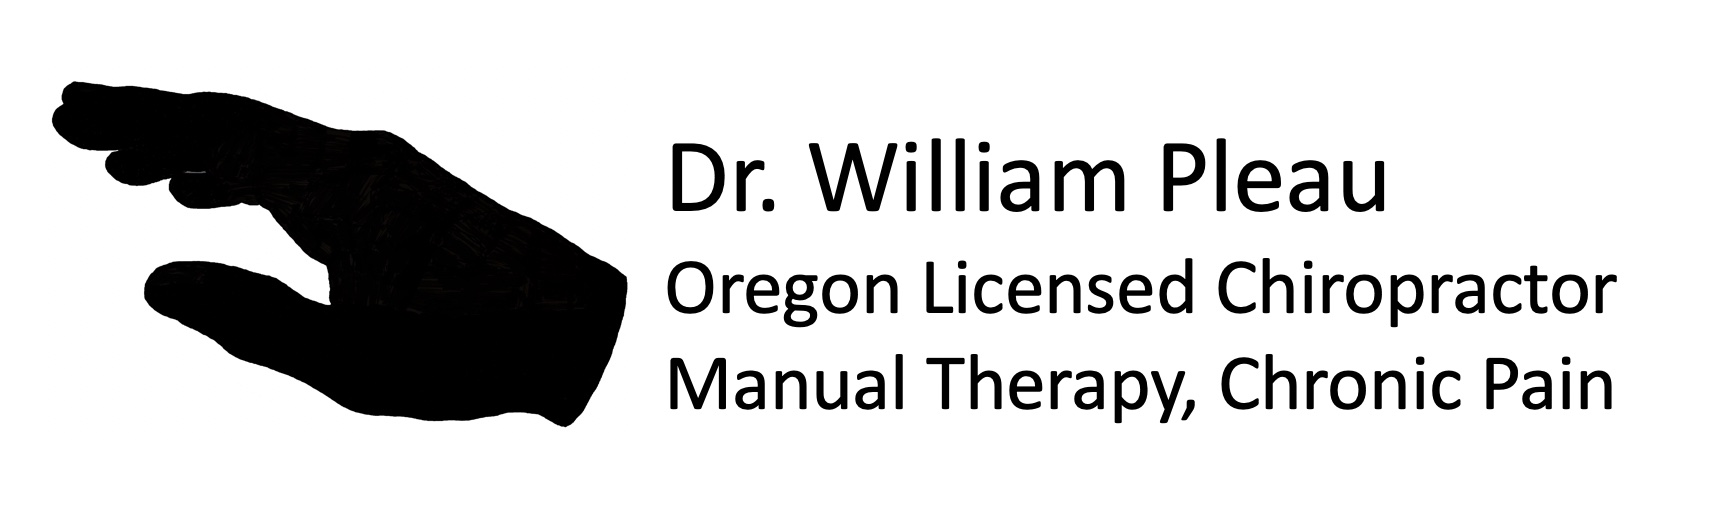 Dr. William Pleau D.C.